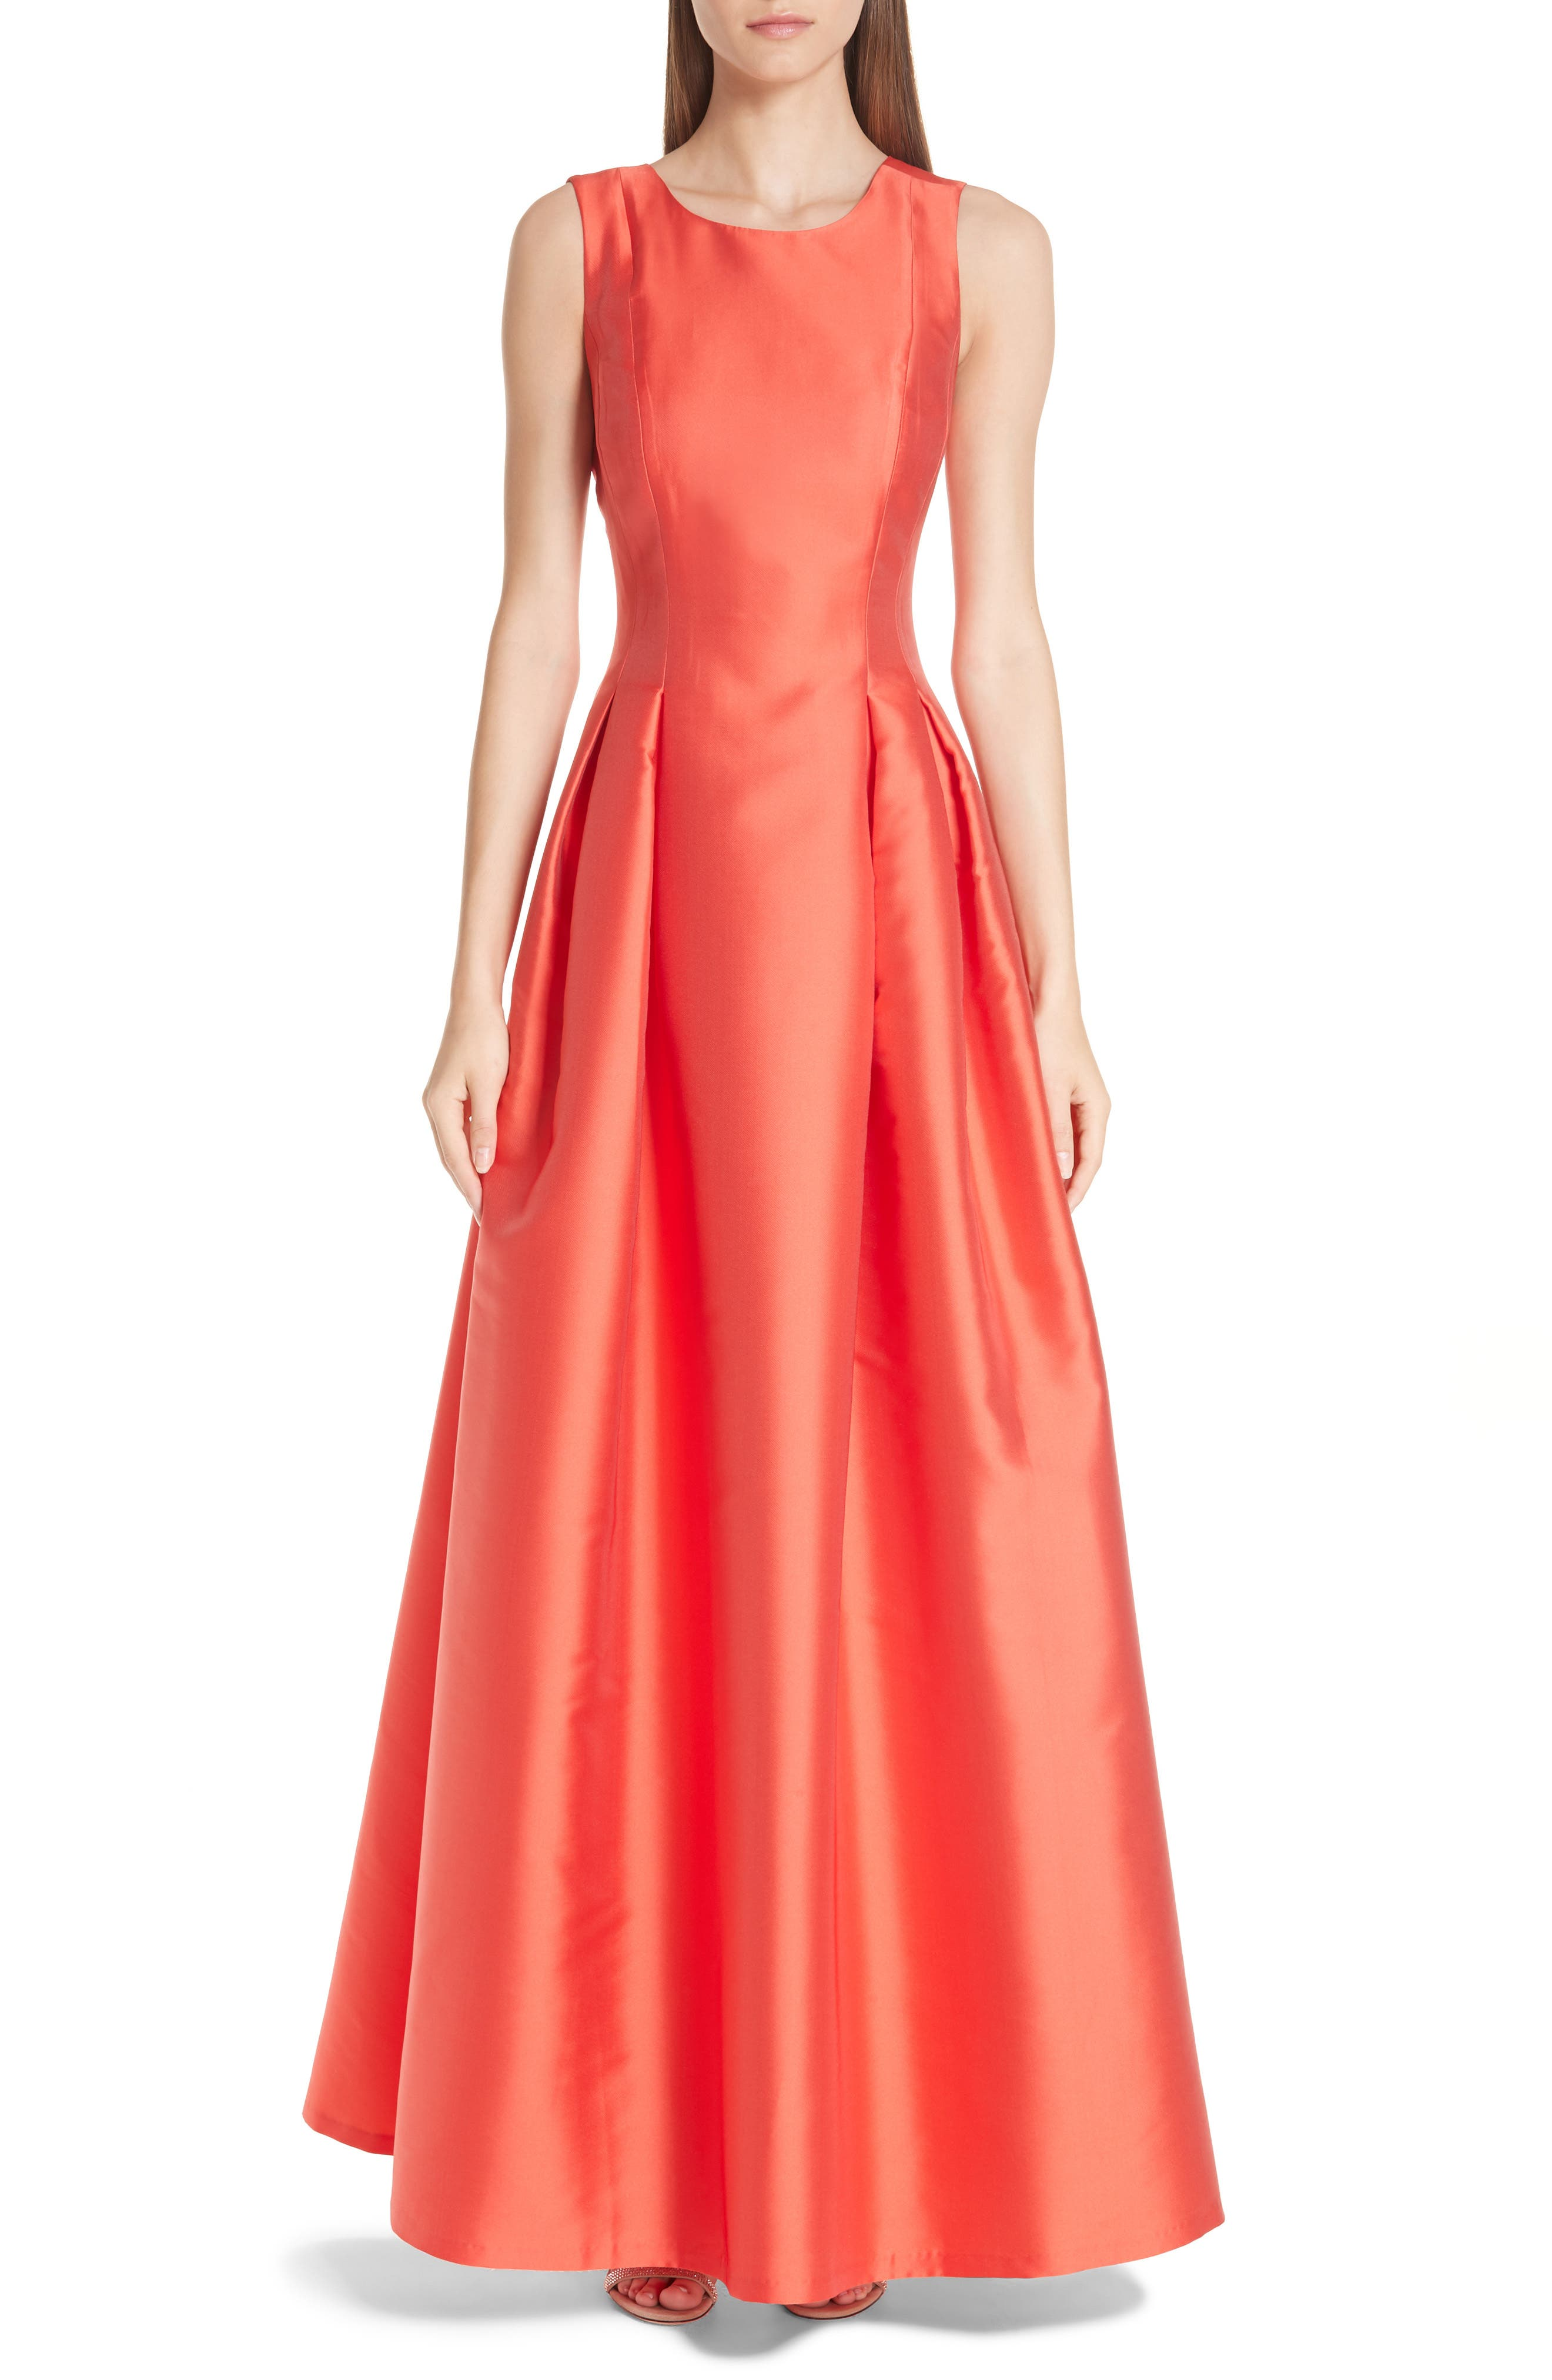 Marmara Ballgown,                             Main thumbnail 1, color,                             Coral Red